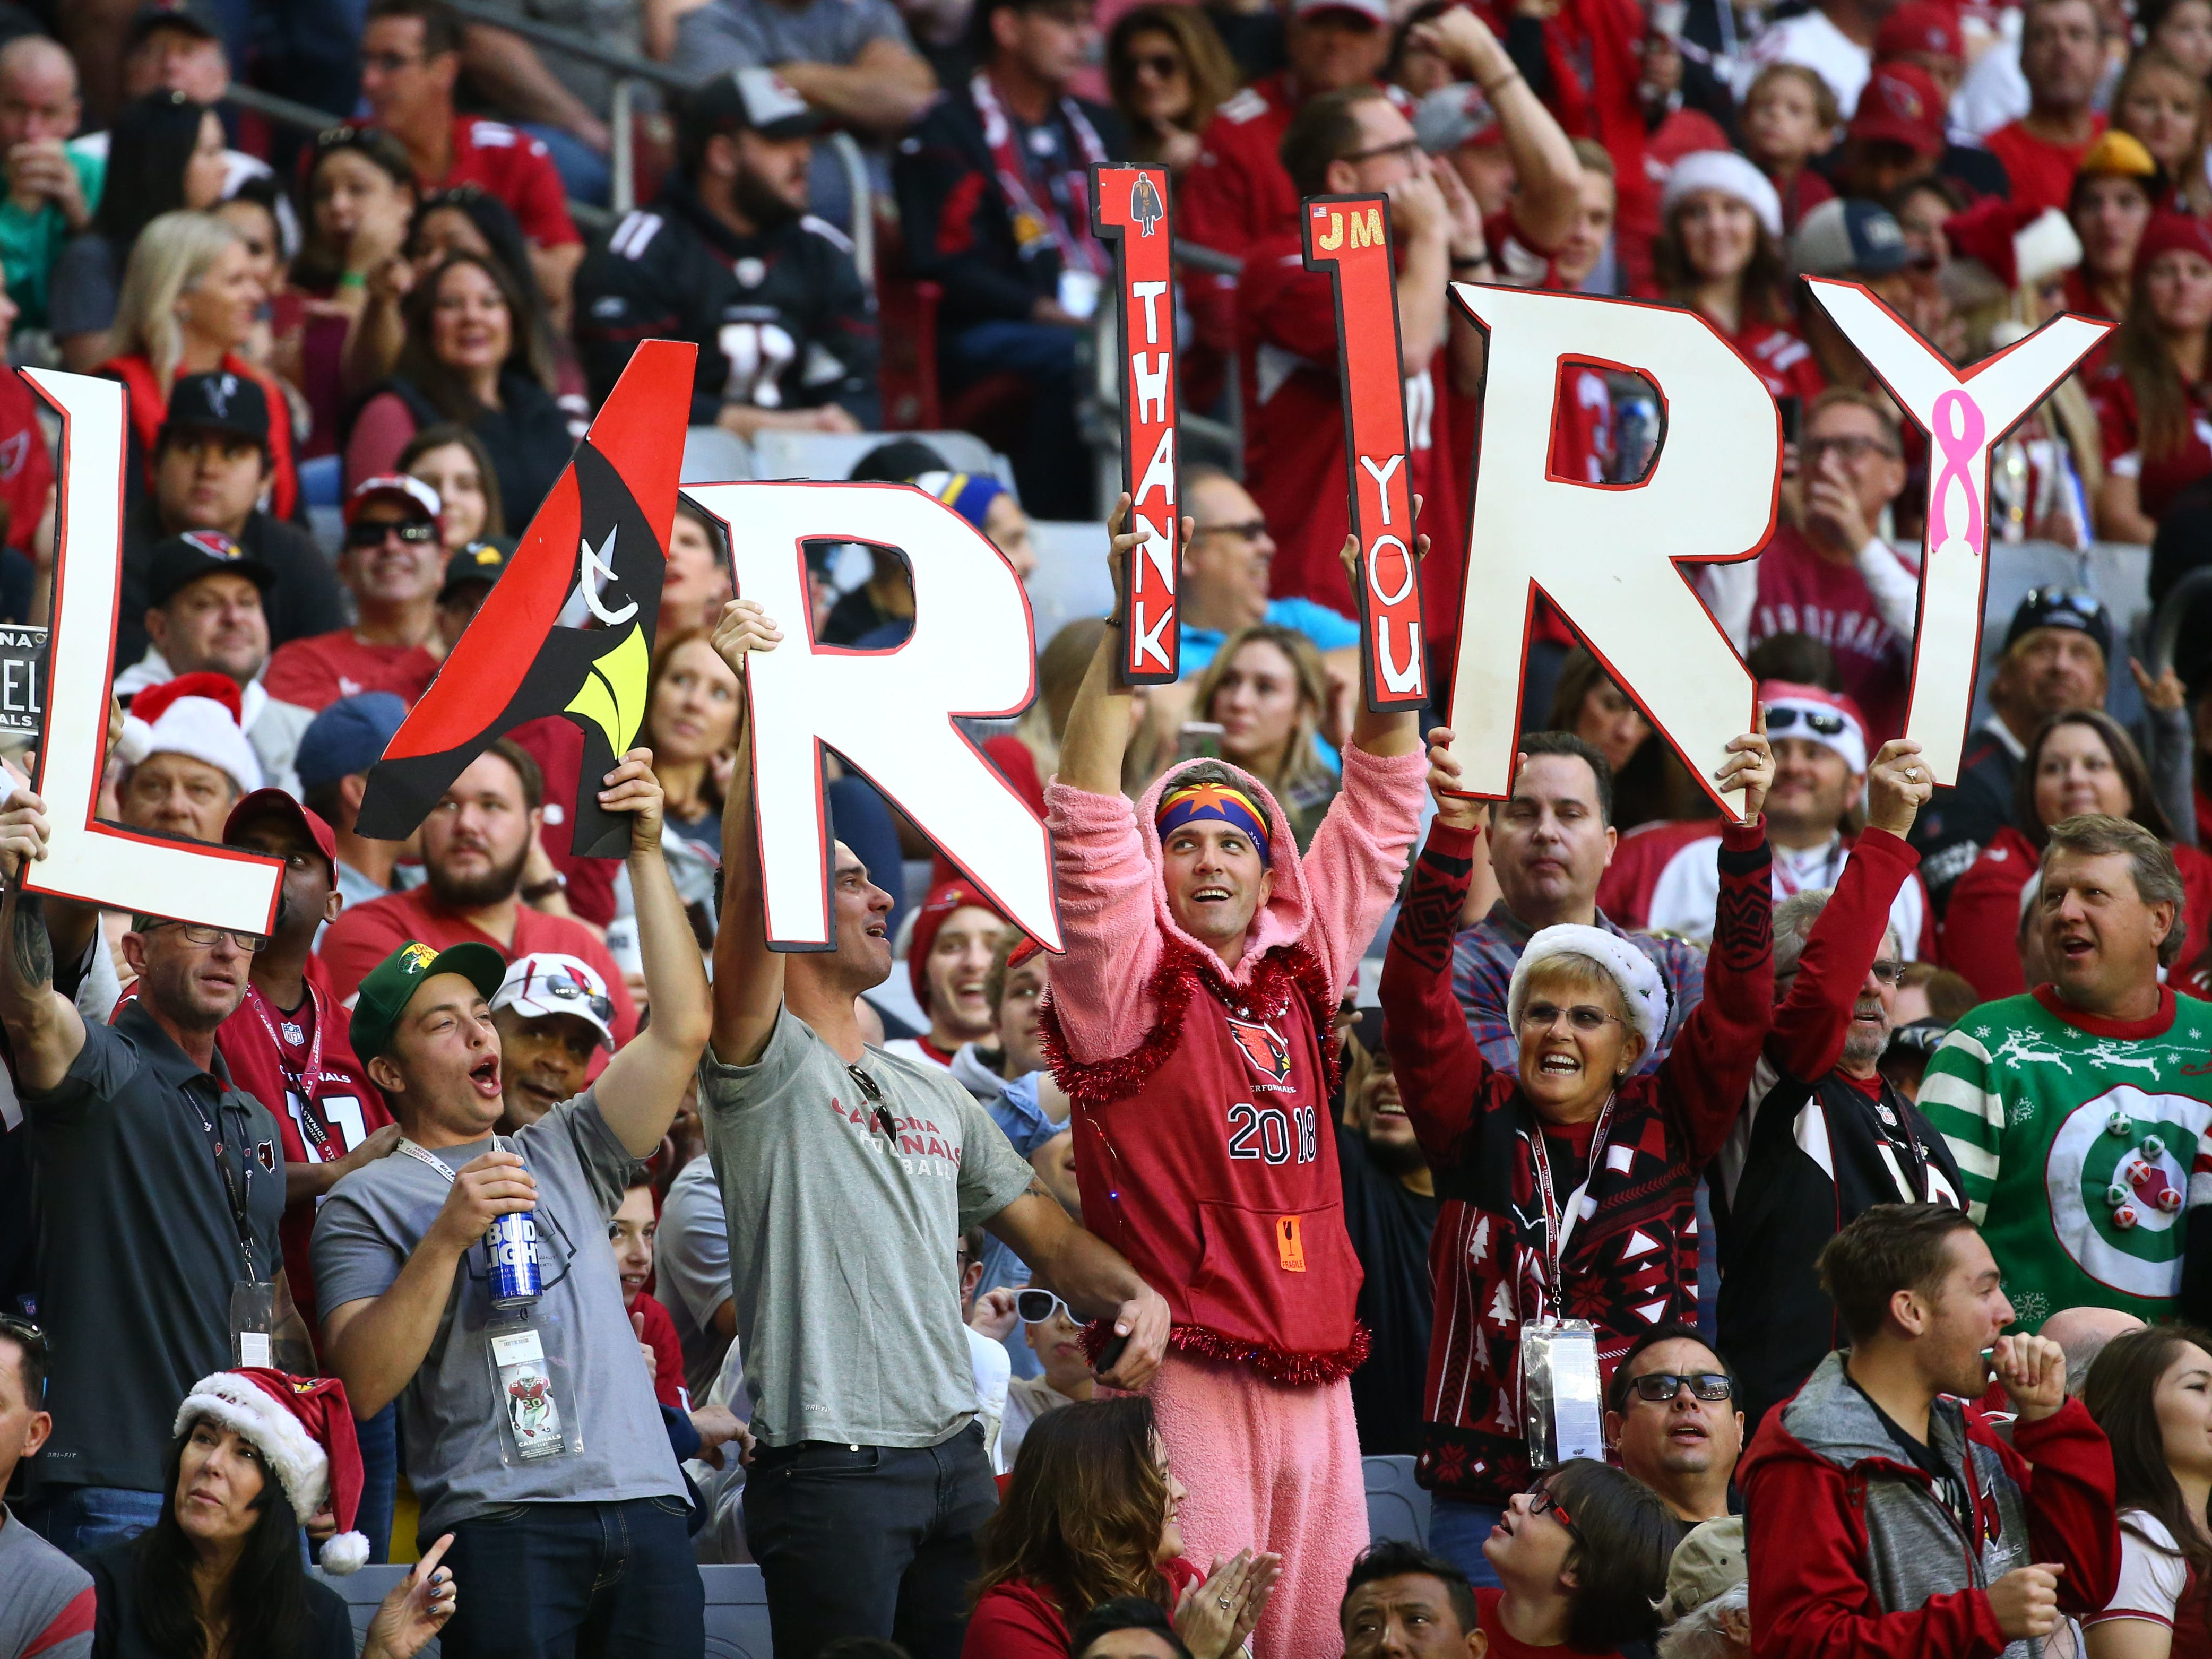 Arizona Cardinals fans cheer for Larry Fitzgerald in the first half on Dec. 23 at State Farm Stadium.